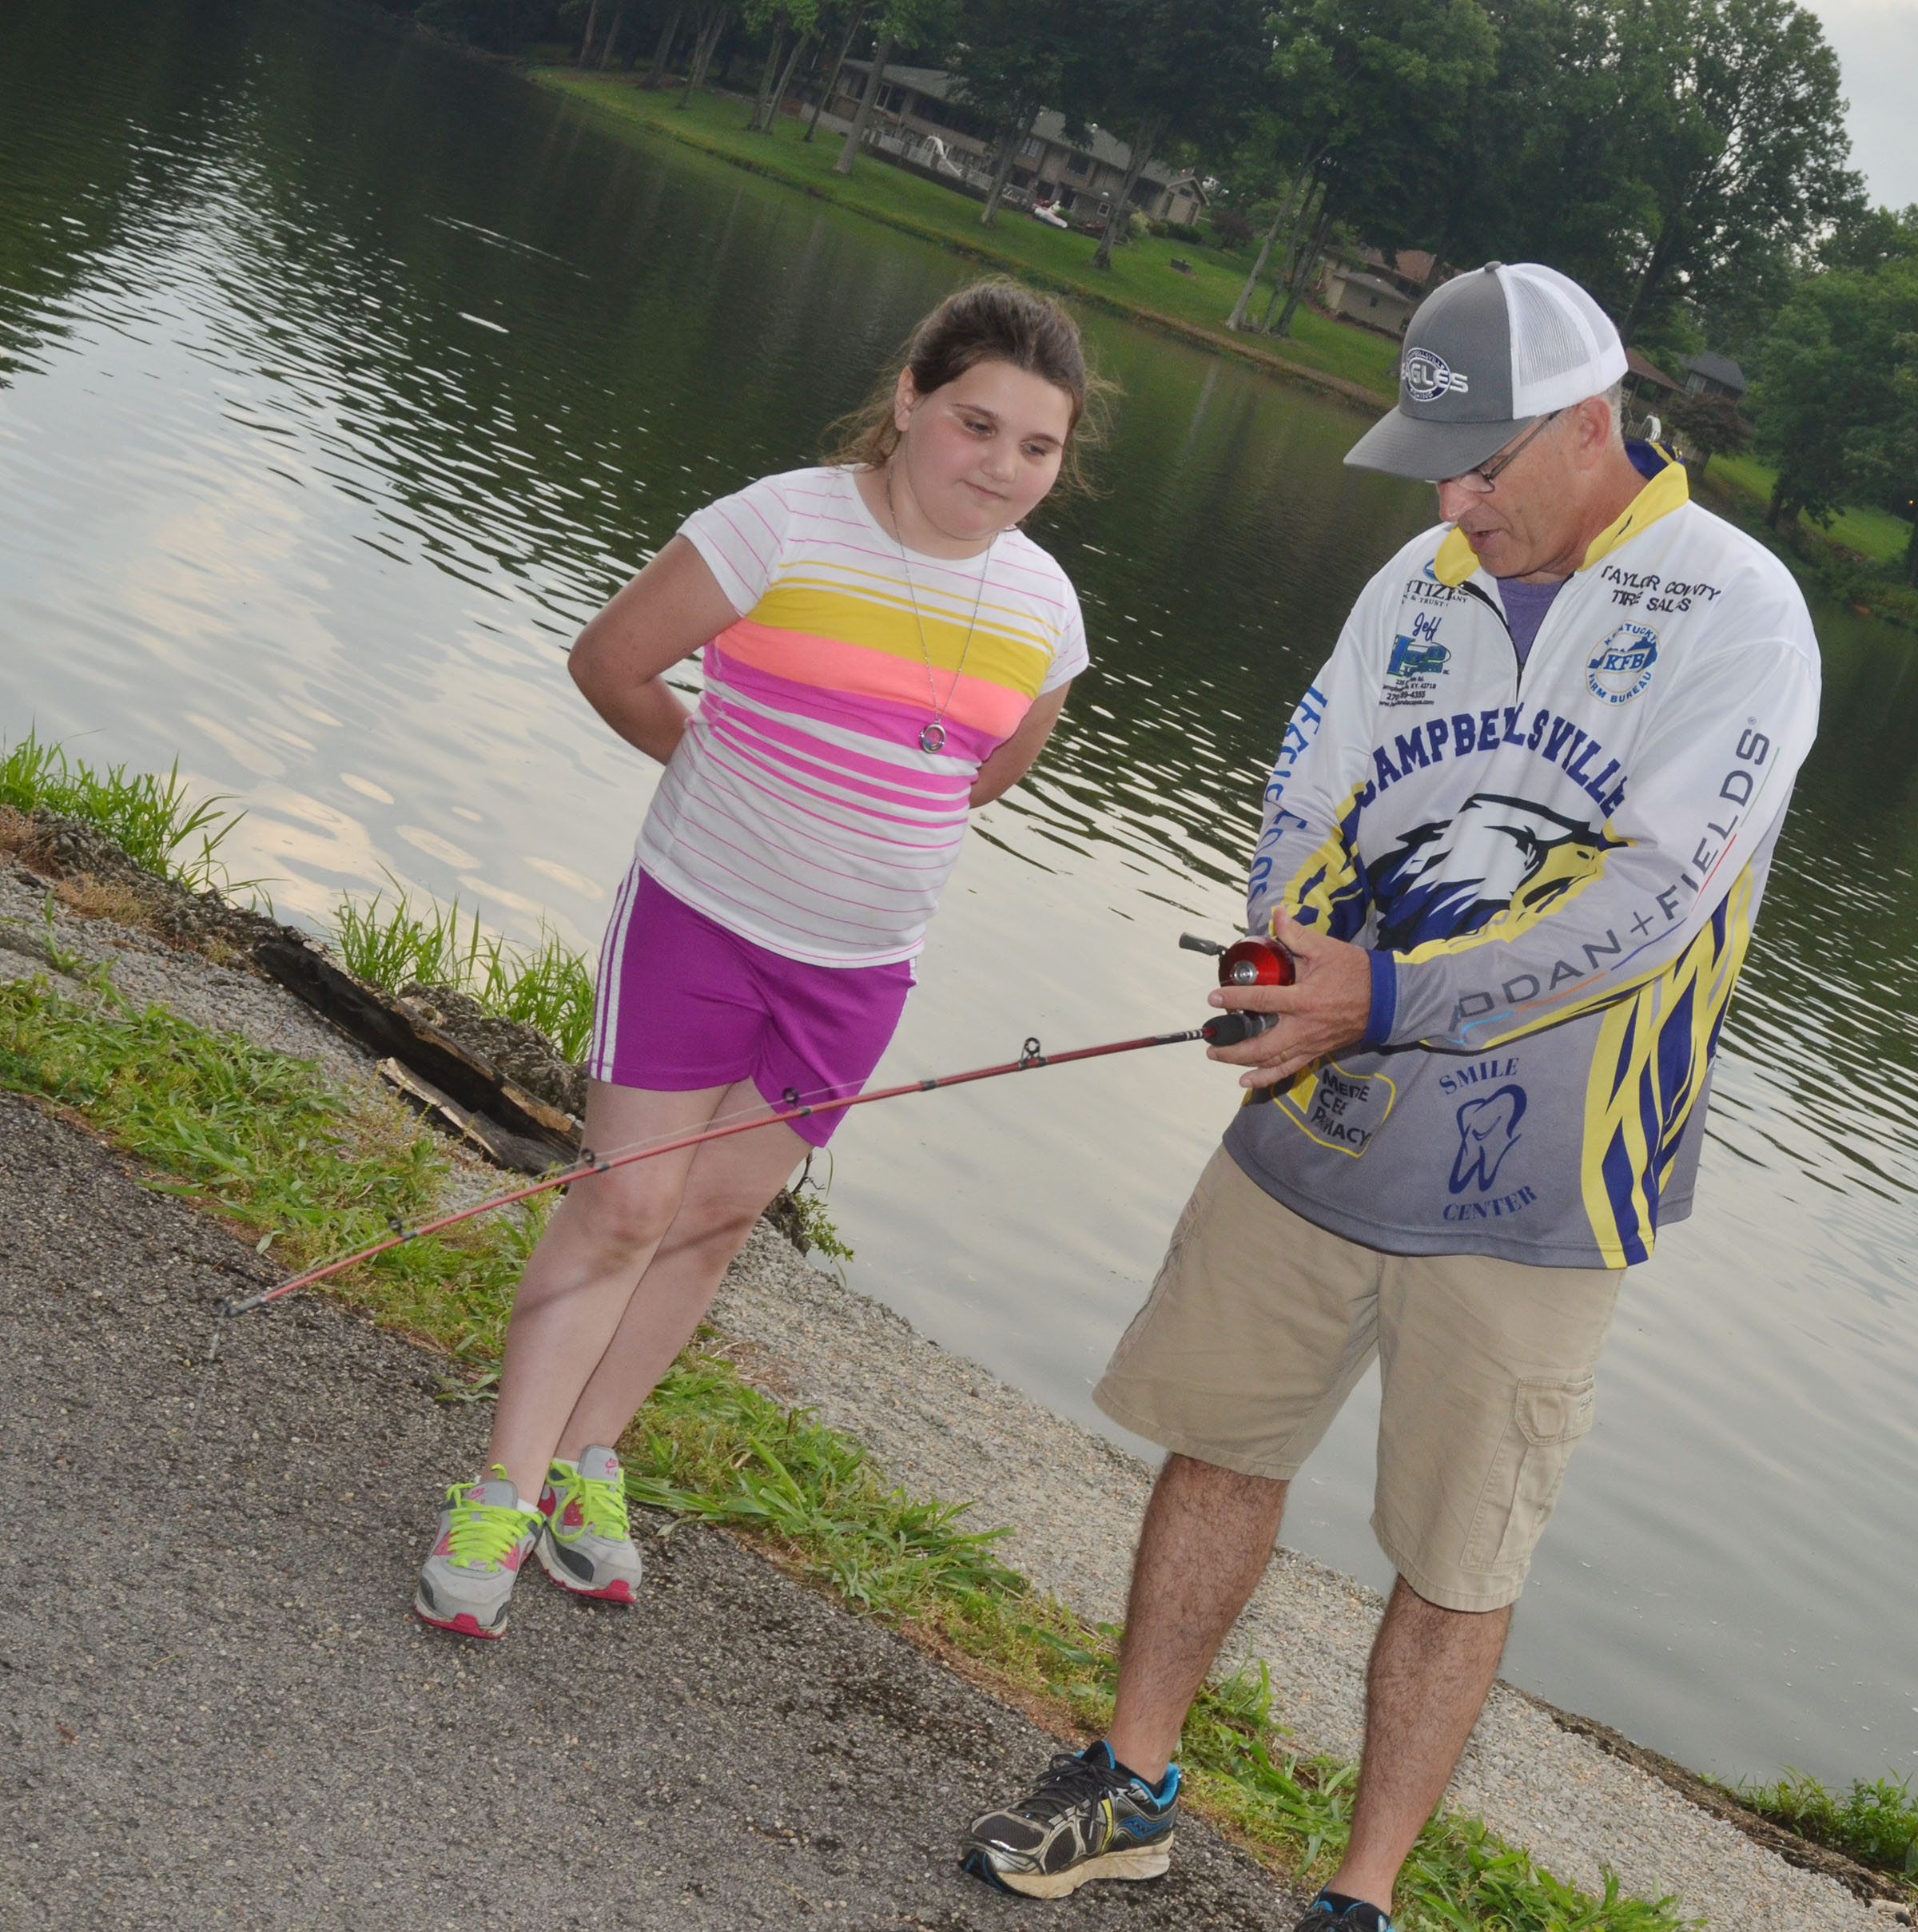 CHS fishing coach Jeff Richardson teaches Campbellsville Elementary School fourth-grader Kailei Hernandez to cast.